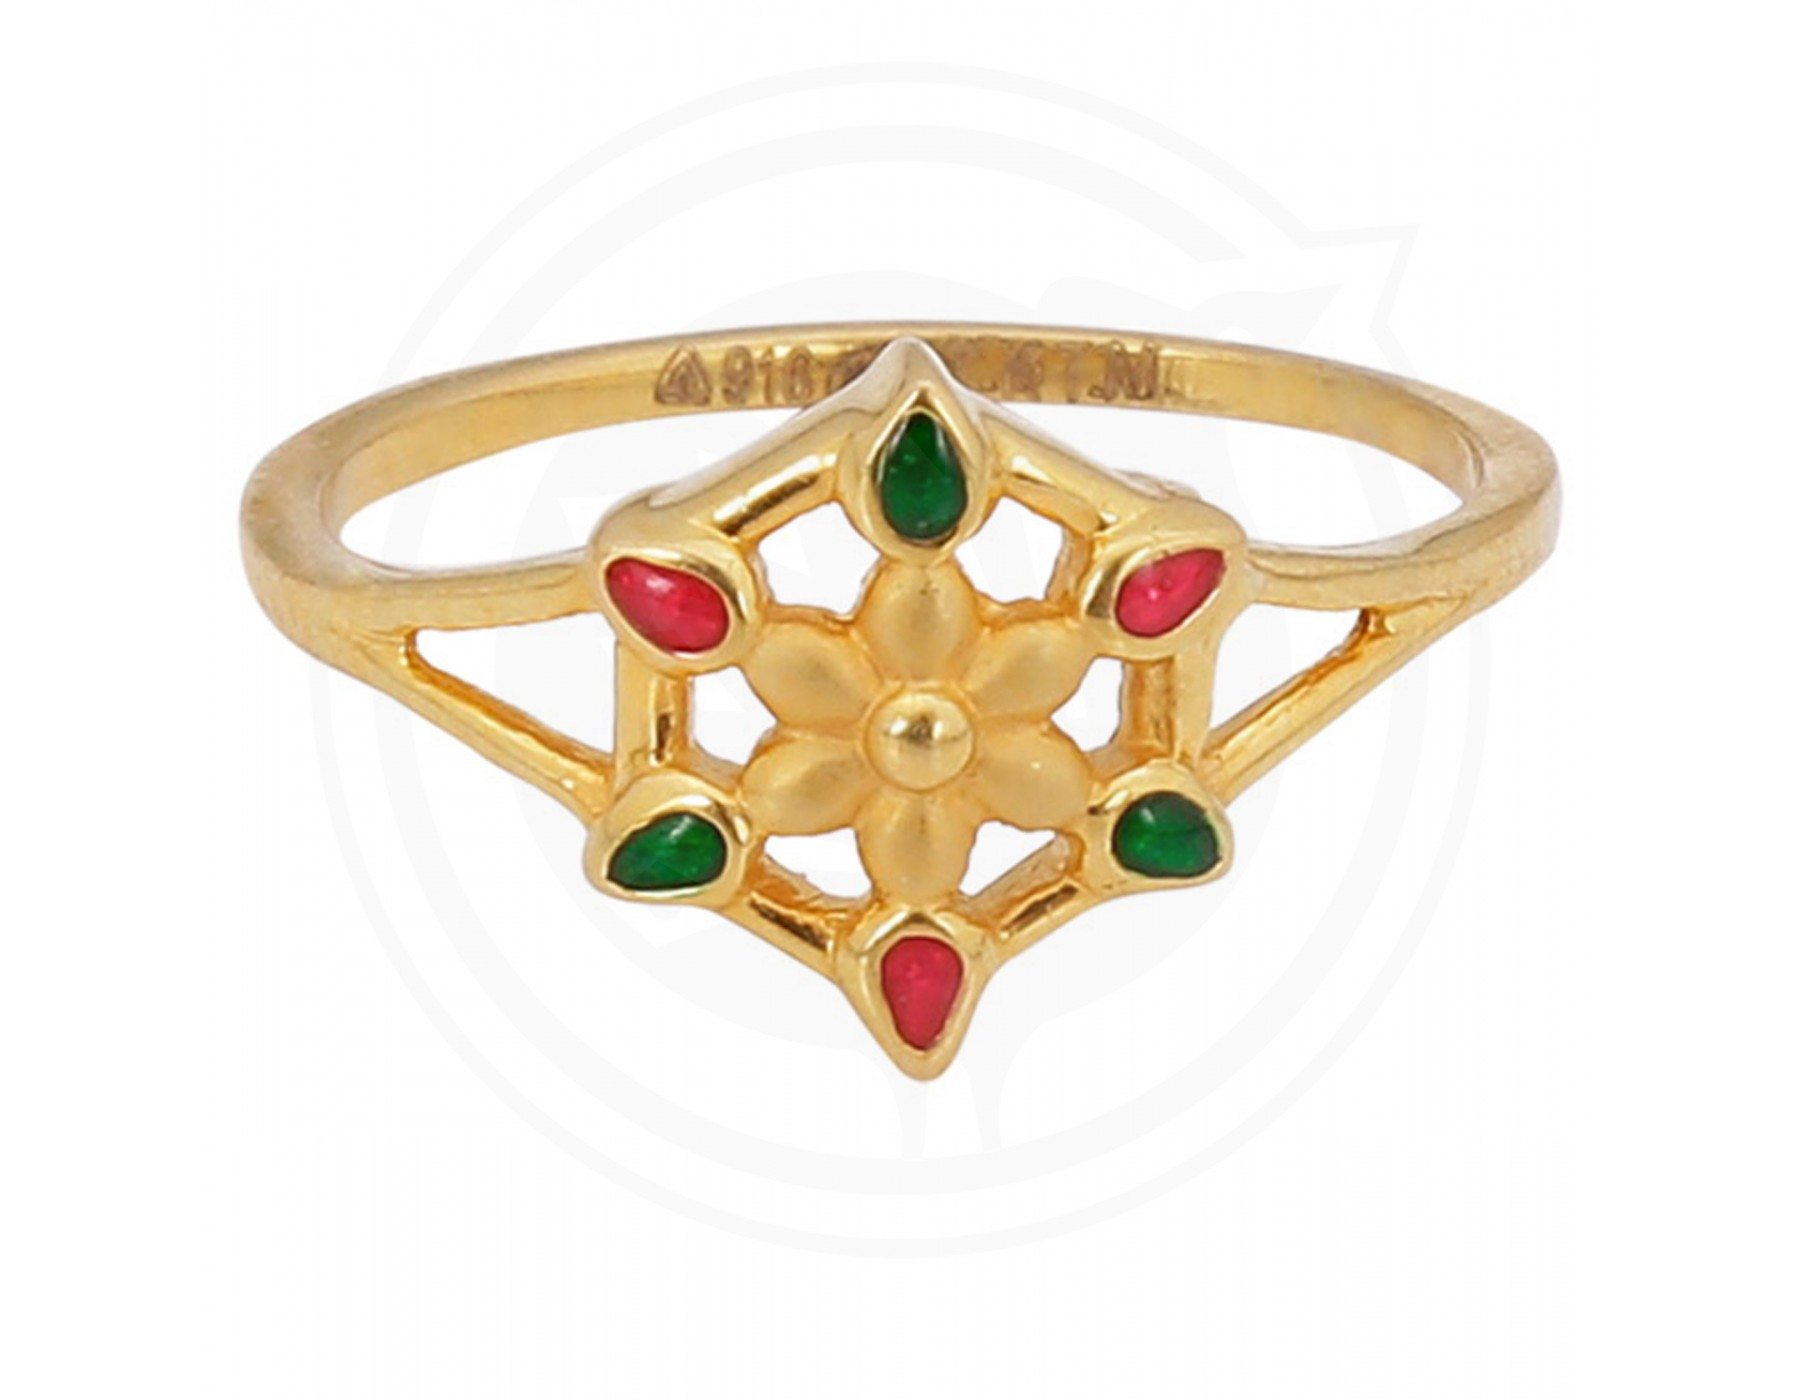 london jewellery vermeil hires links jewelry en women for of gold timeless rings signet us ring yellow